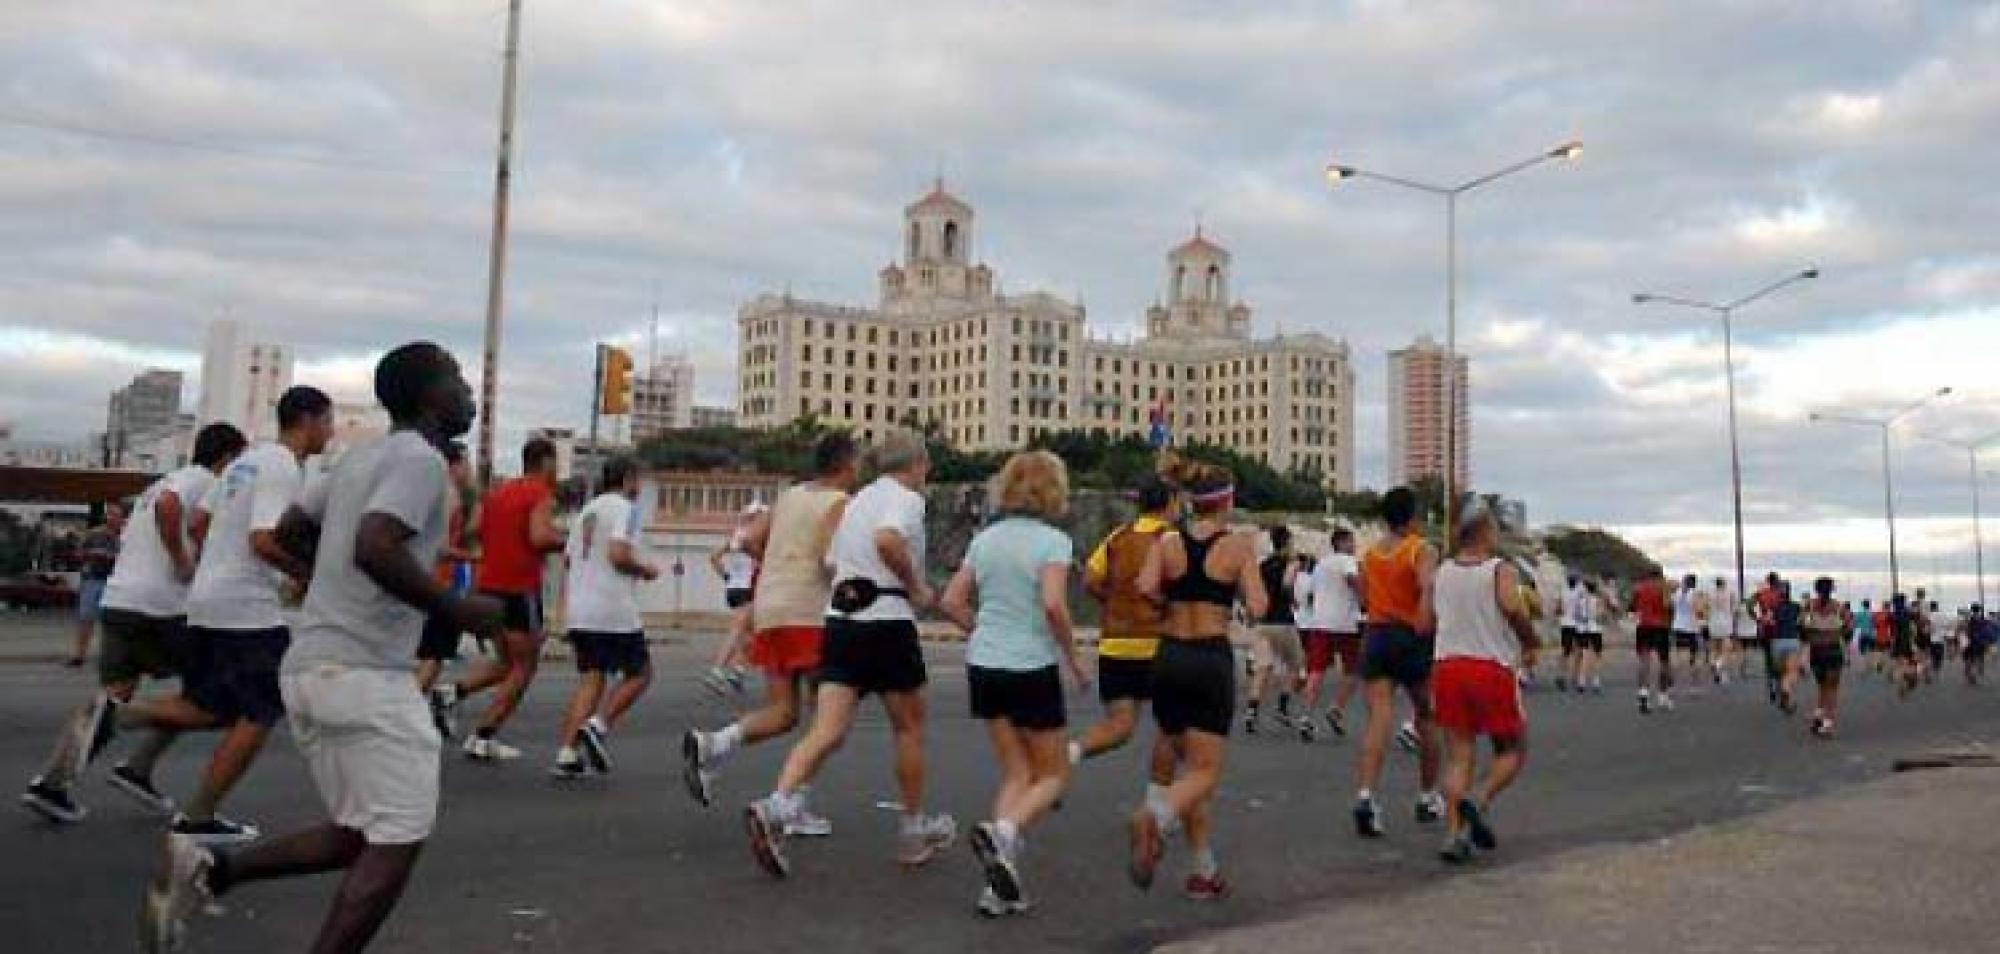 Over 1,000 Foreigners Confirmed for Marabana Marathon in Cuba